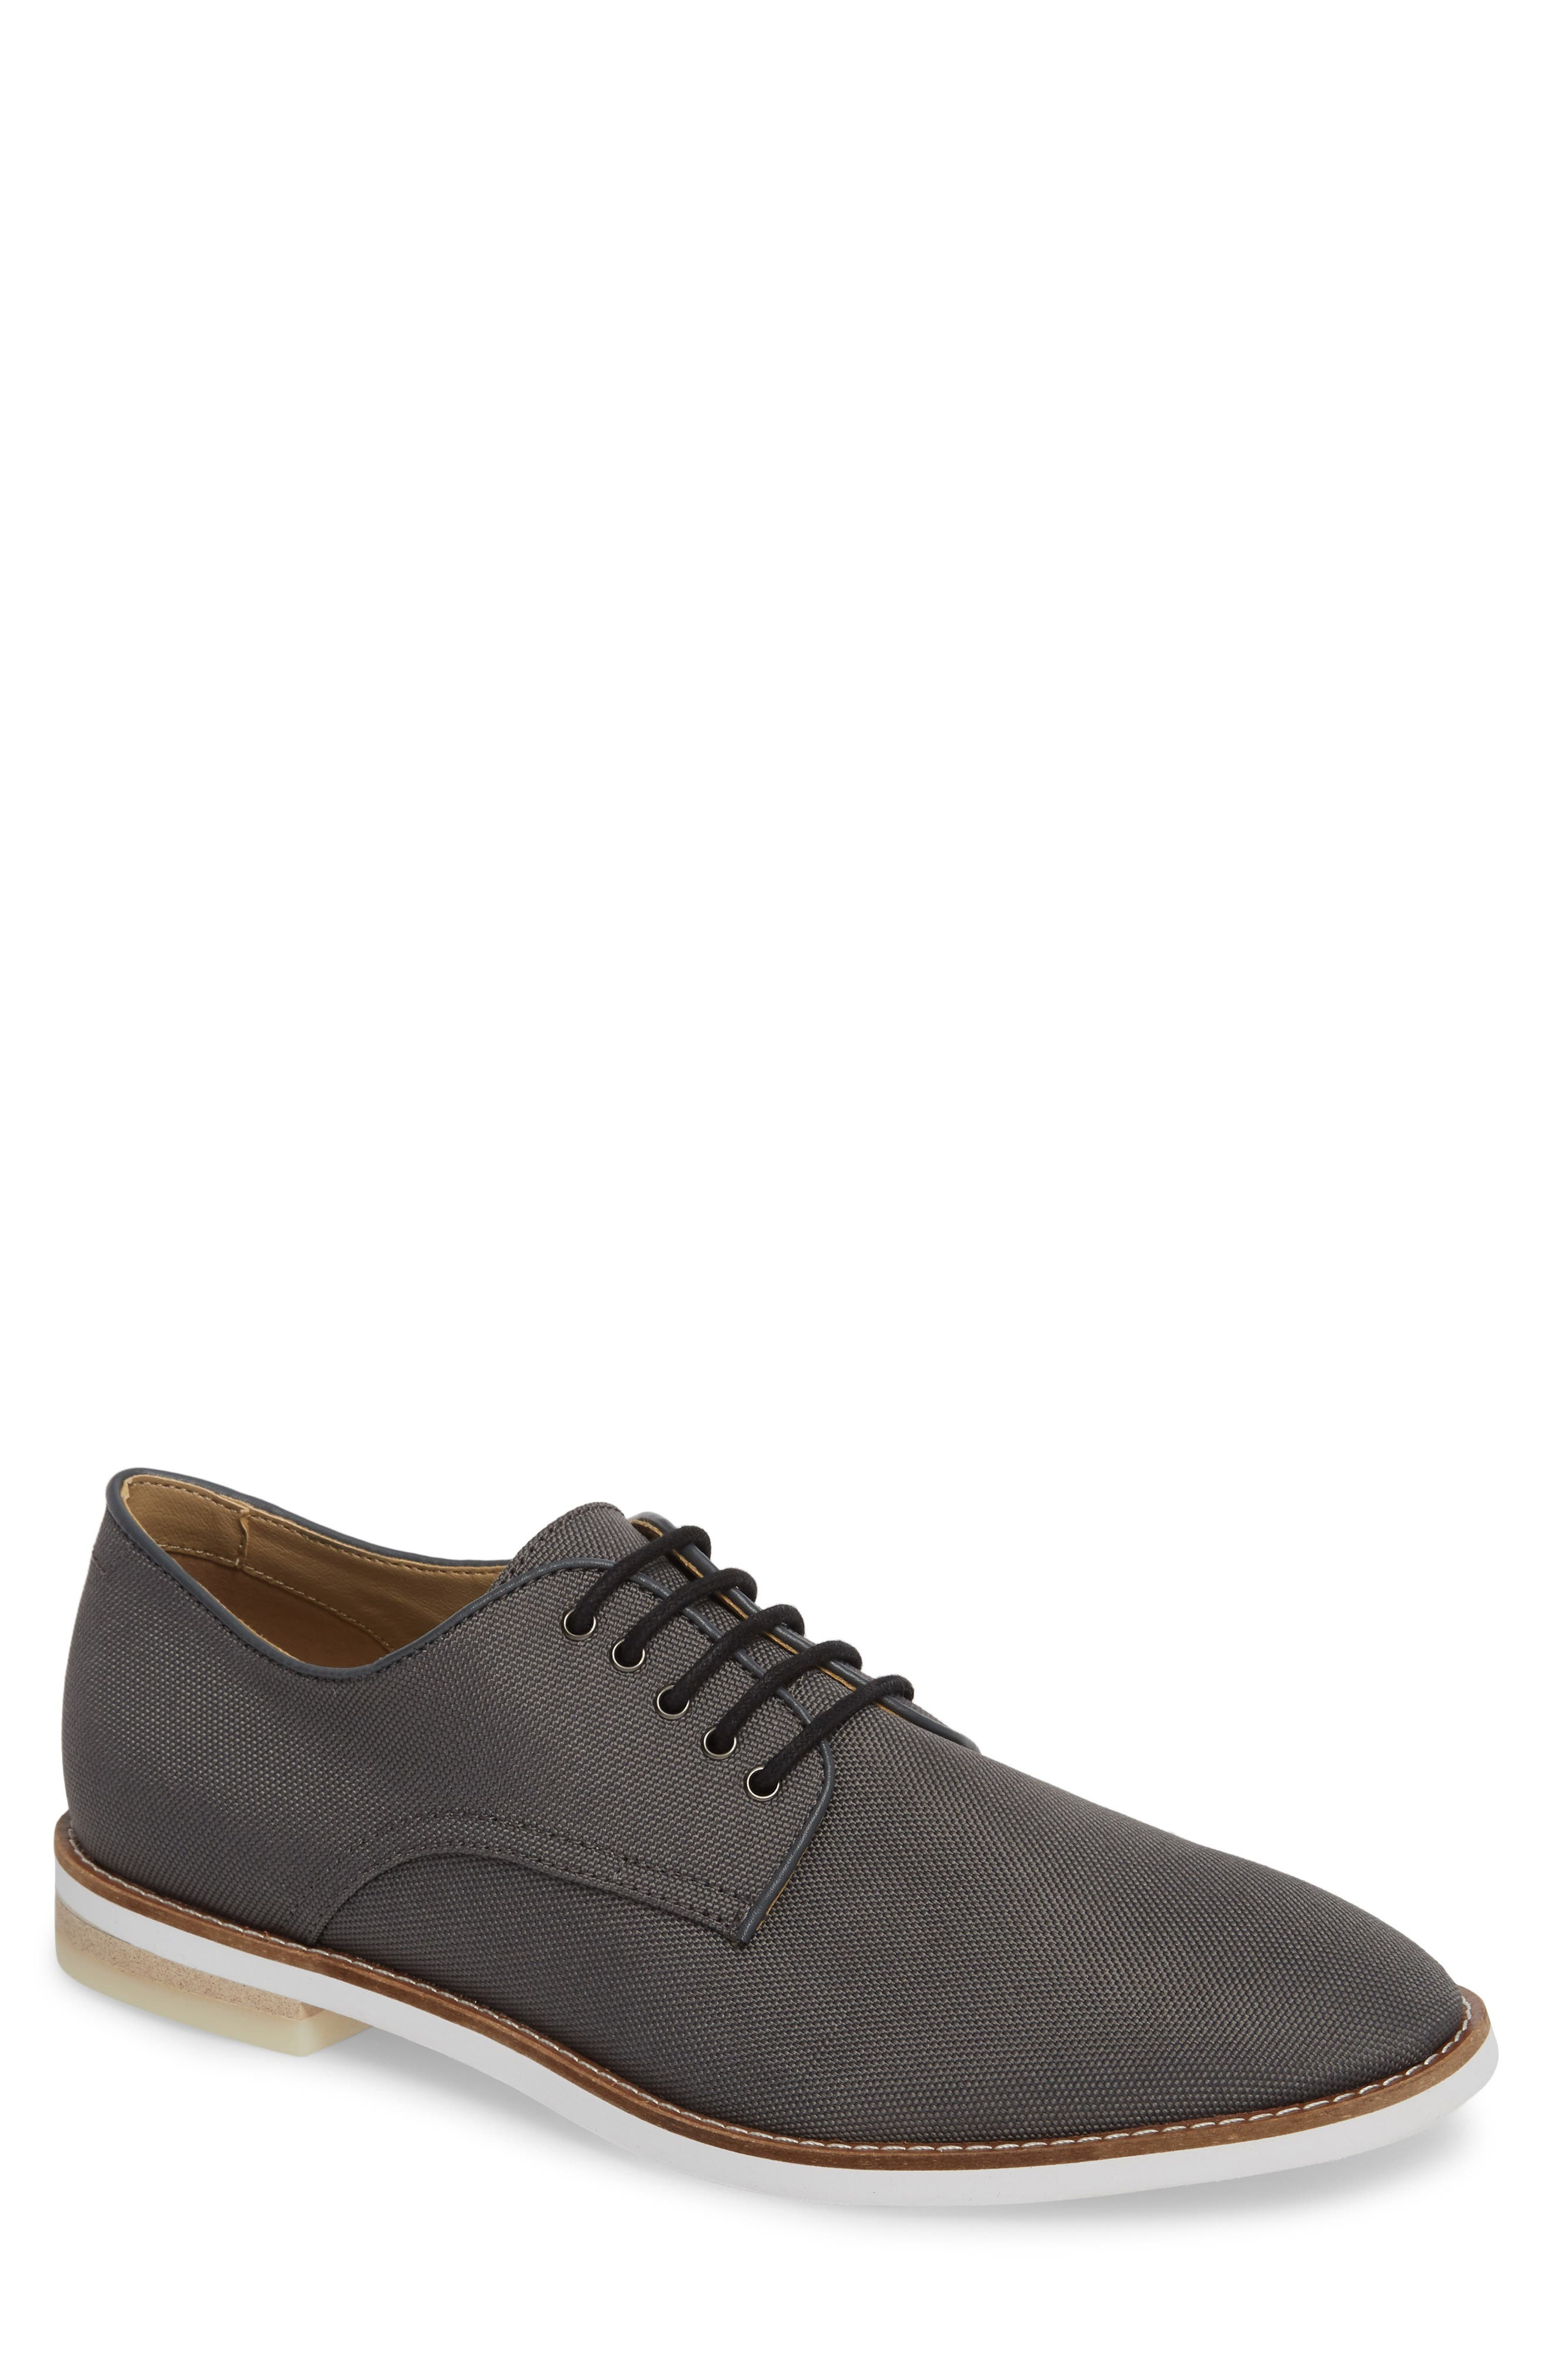 Atlee Plain Toe Derby,                         Main,                         color, GREY SYNTHETIC